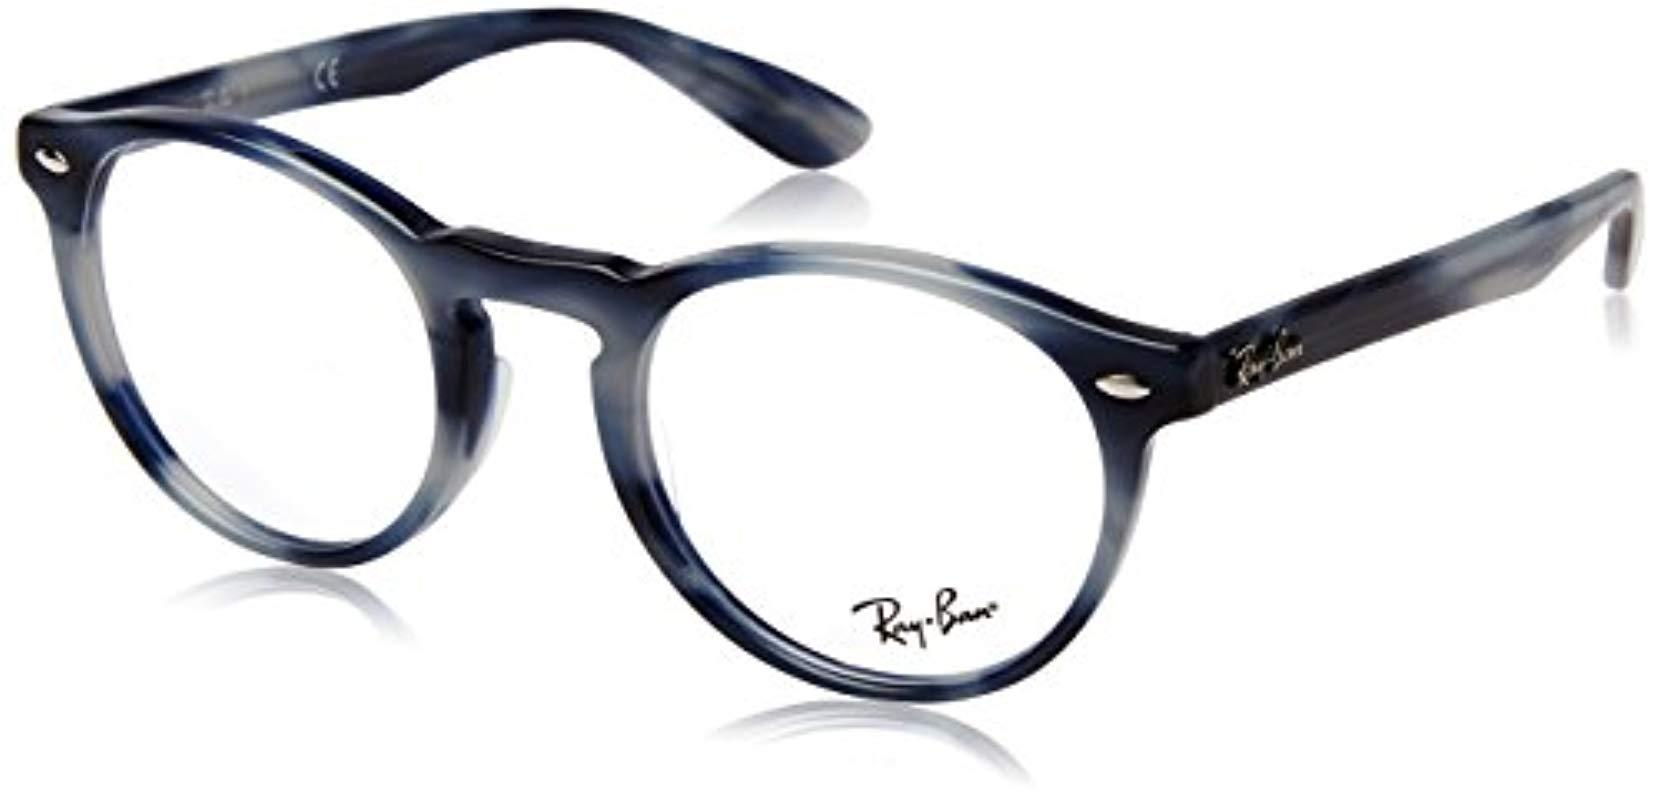 caefe03308 Ray-Ban. Women s Gray 0rx 5283 5773 49 Optical Frames